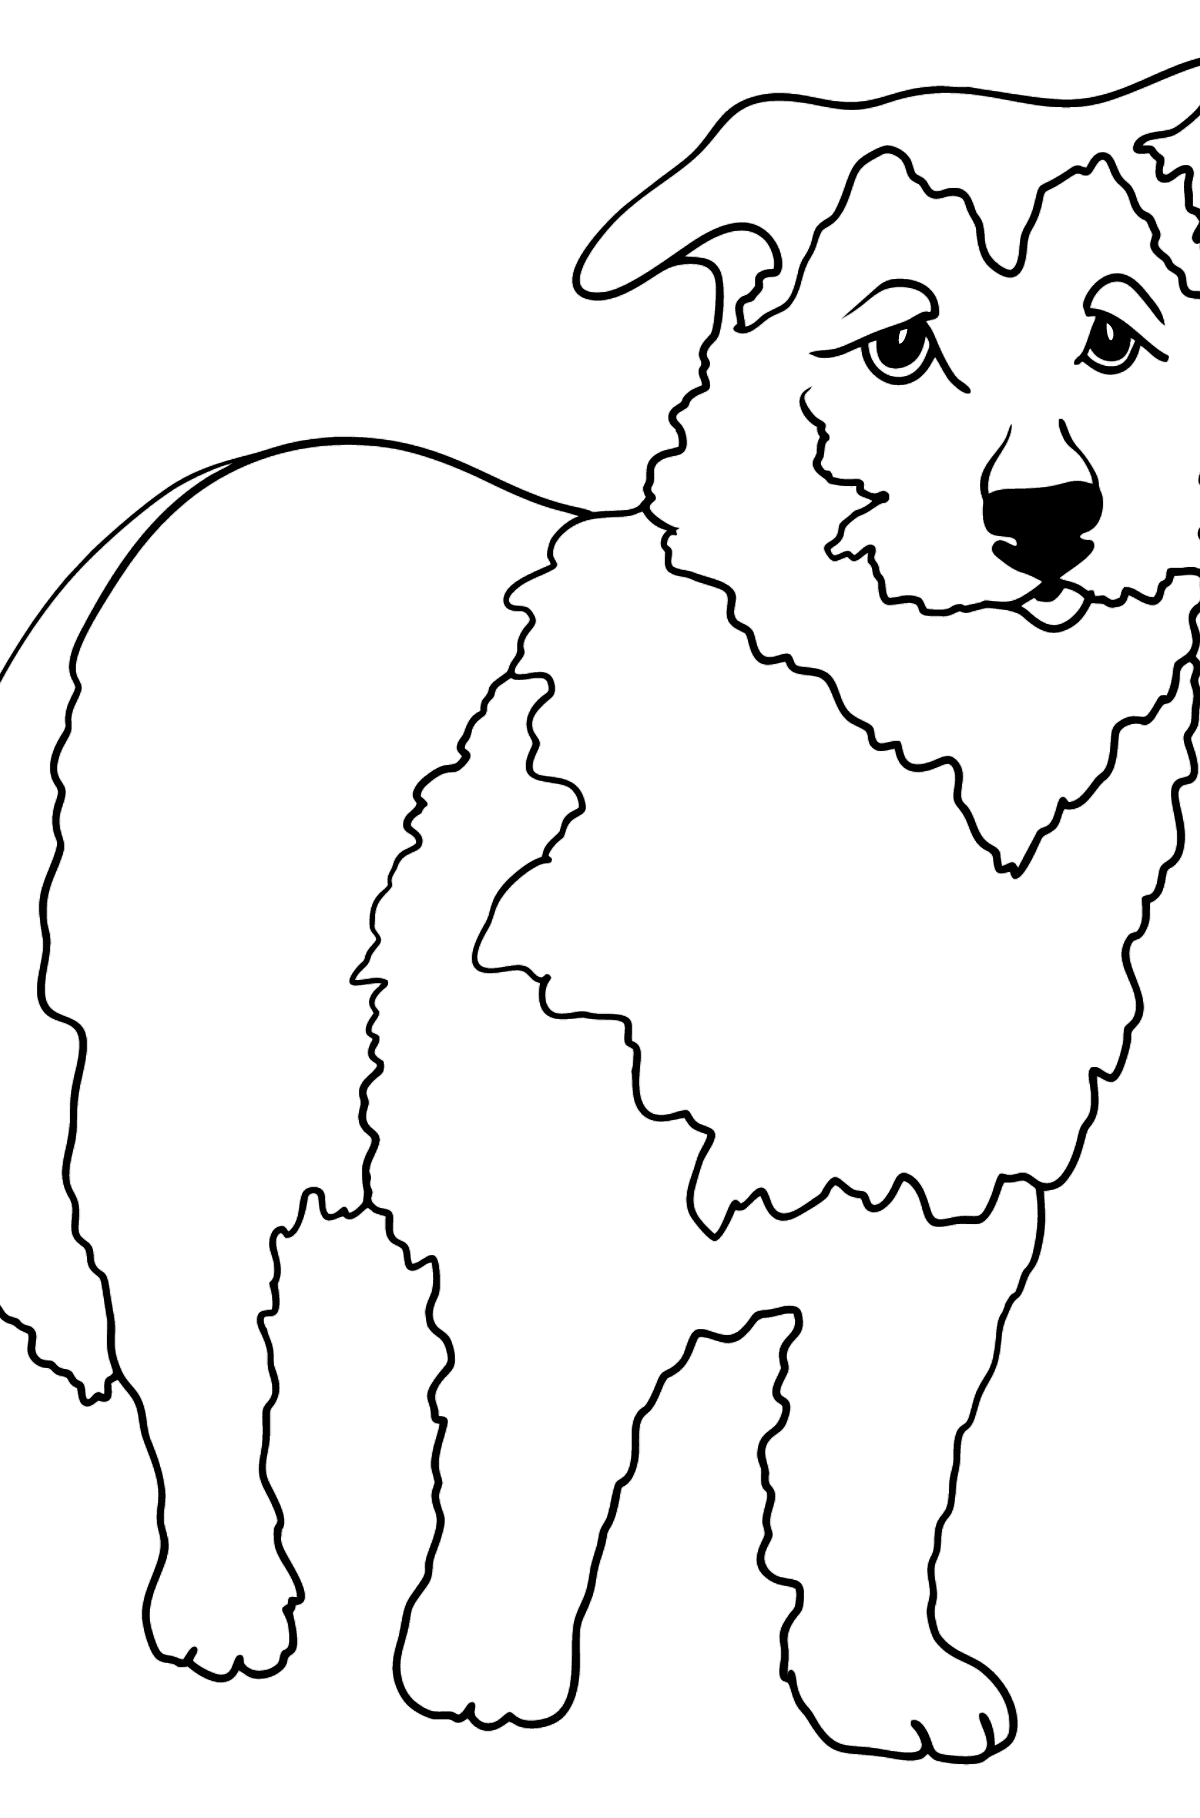 Golden shepherd coloring page - Coloring Pages for Kids